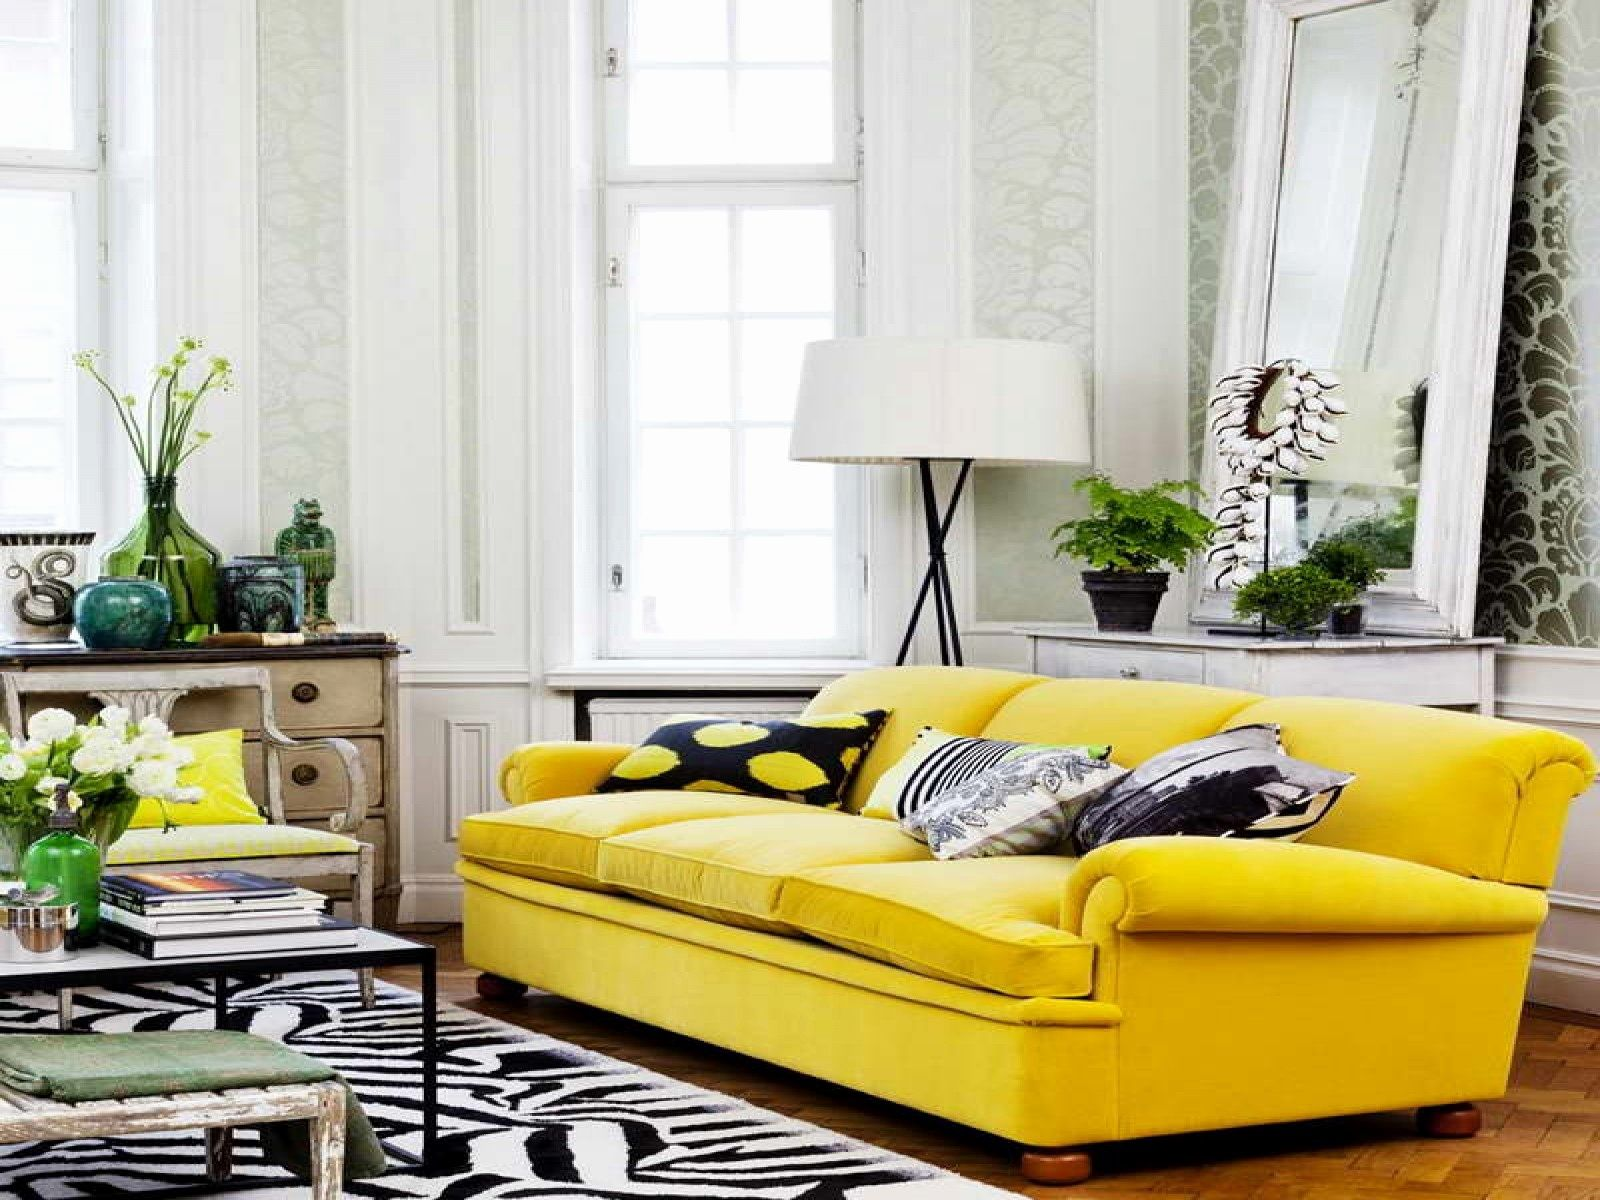 Inspirational Yellow sofa Set Image living room interior ideas